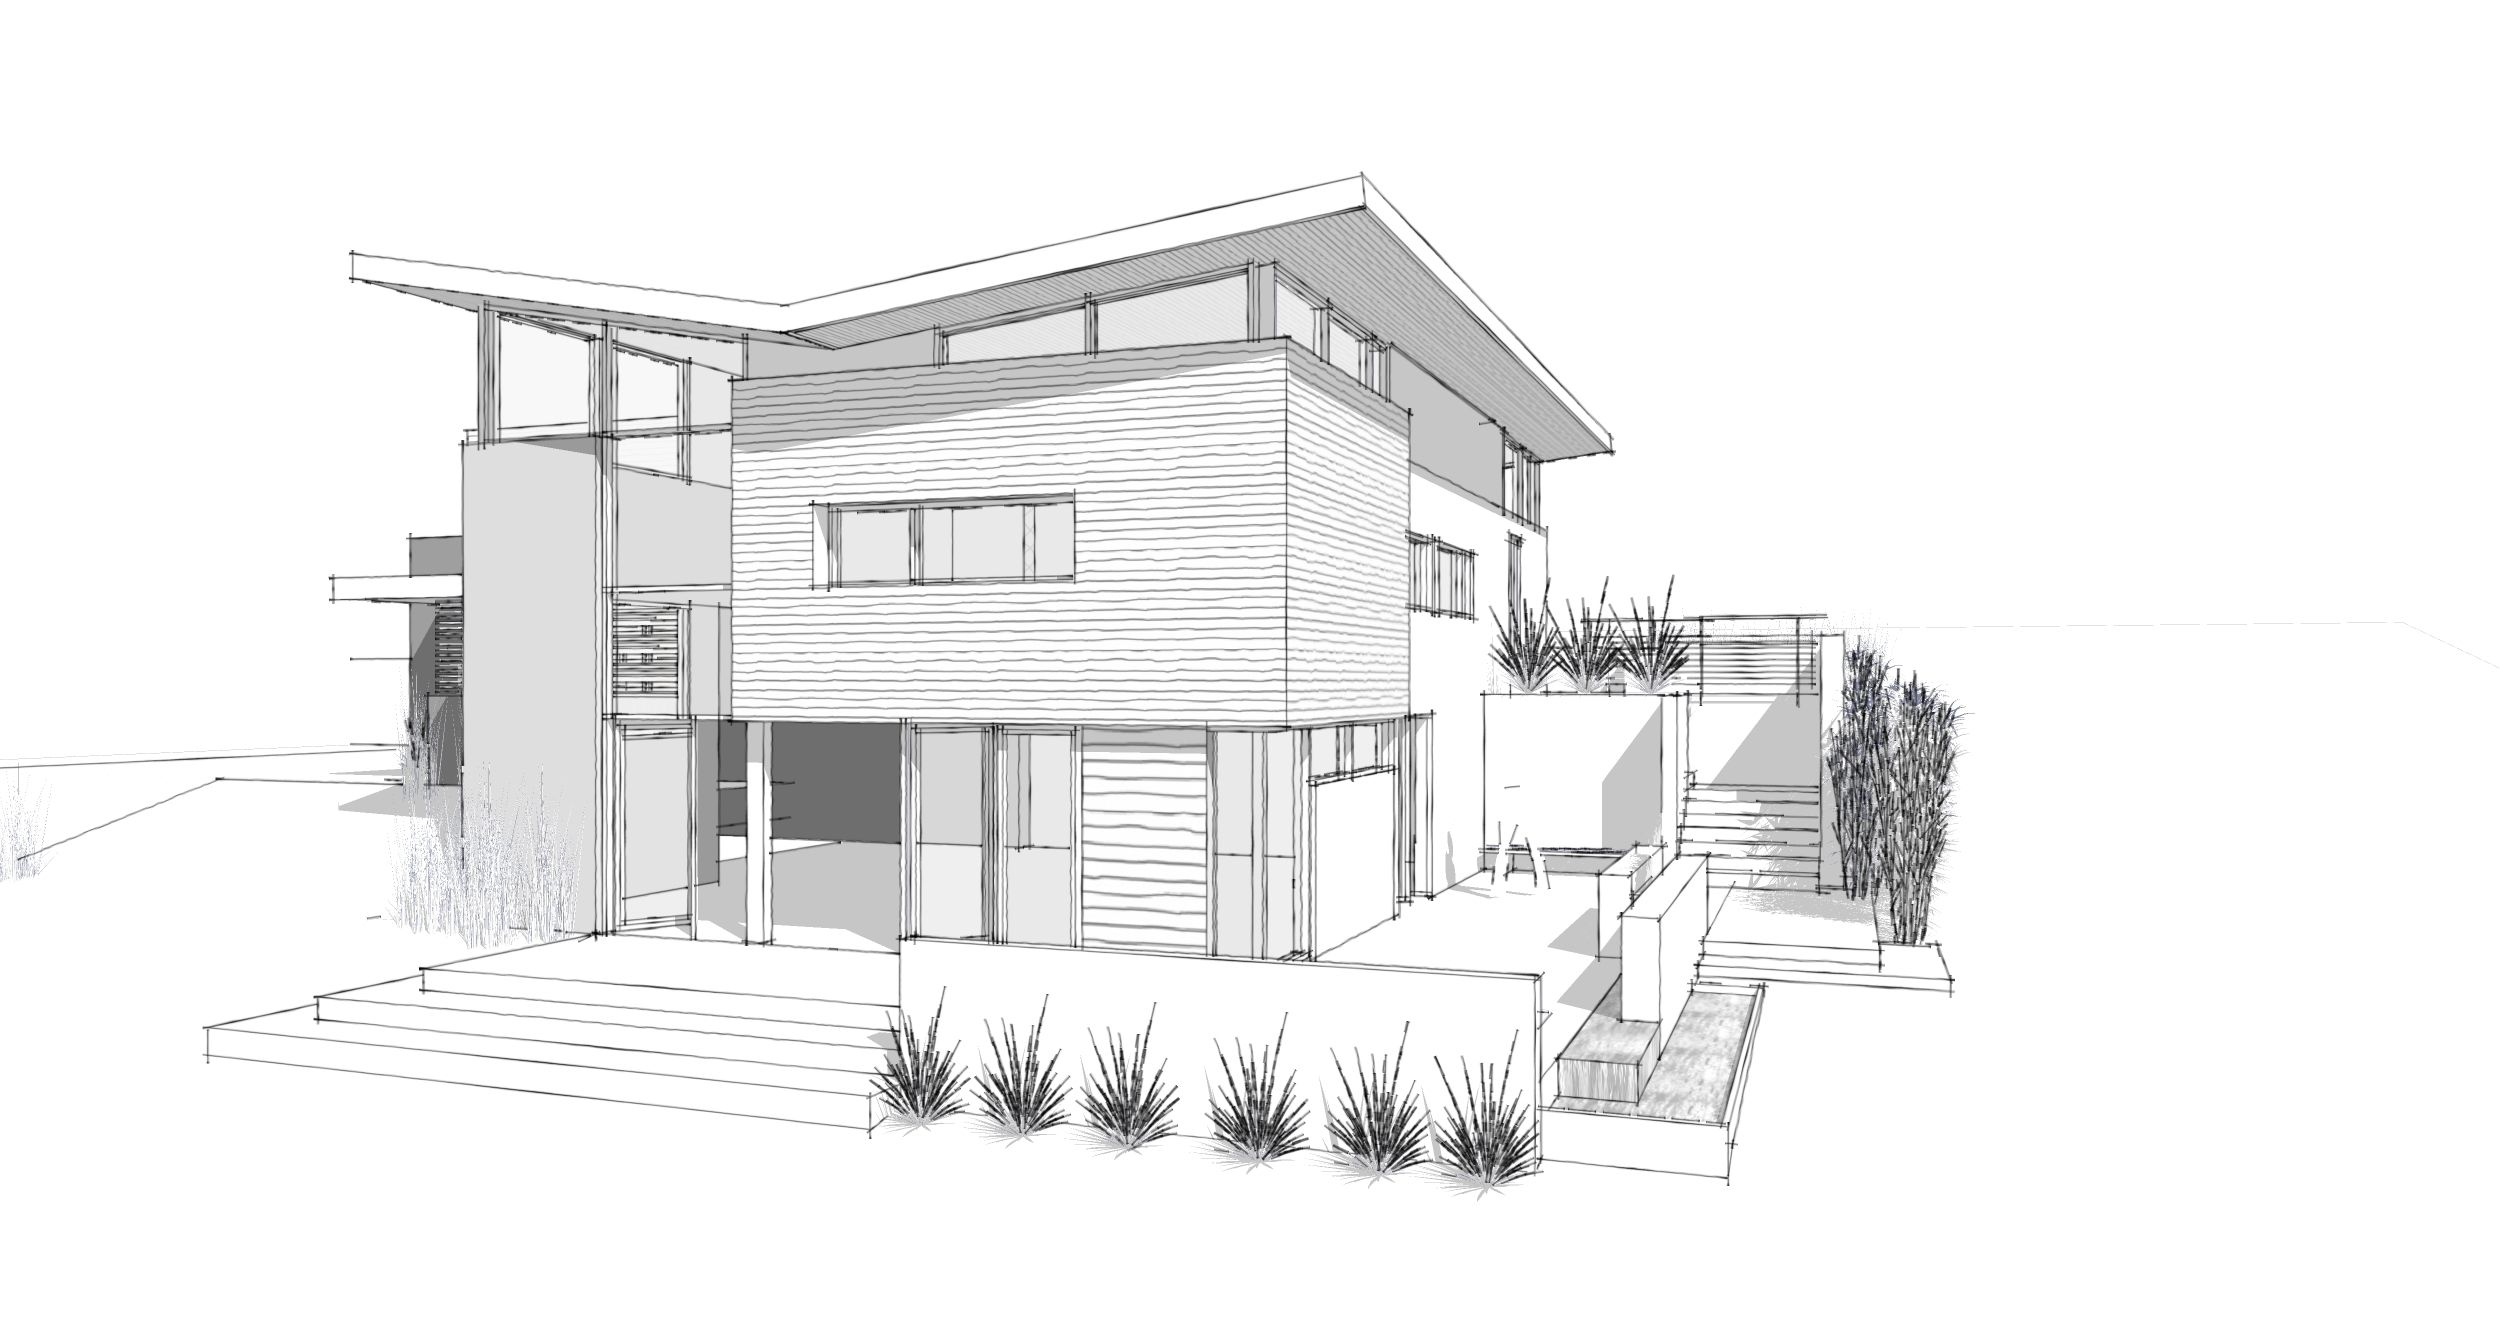 Modern home architecture sketches design ideas 13435 for Design home plans sketch